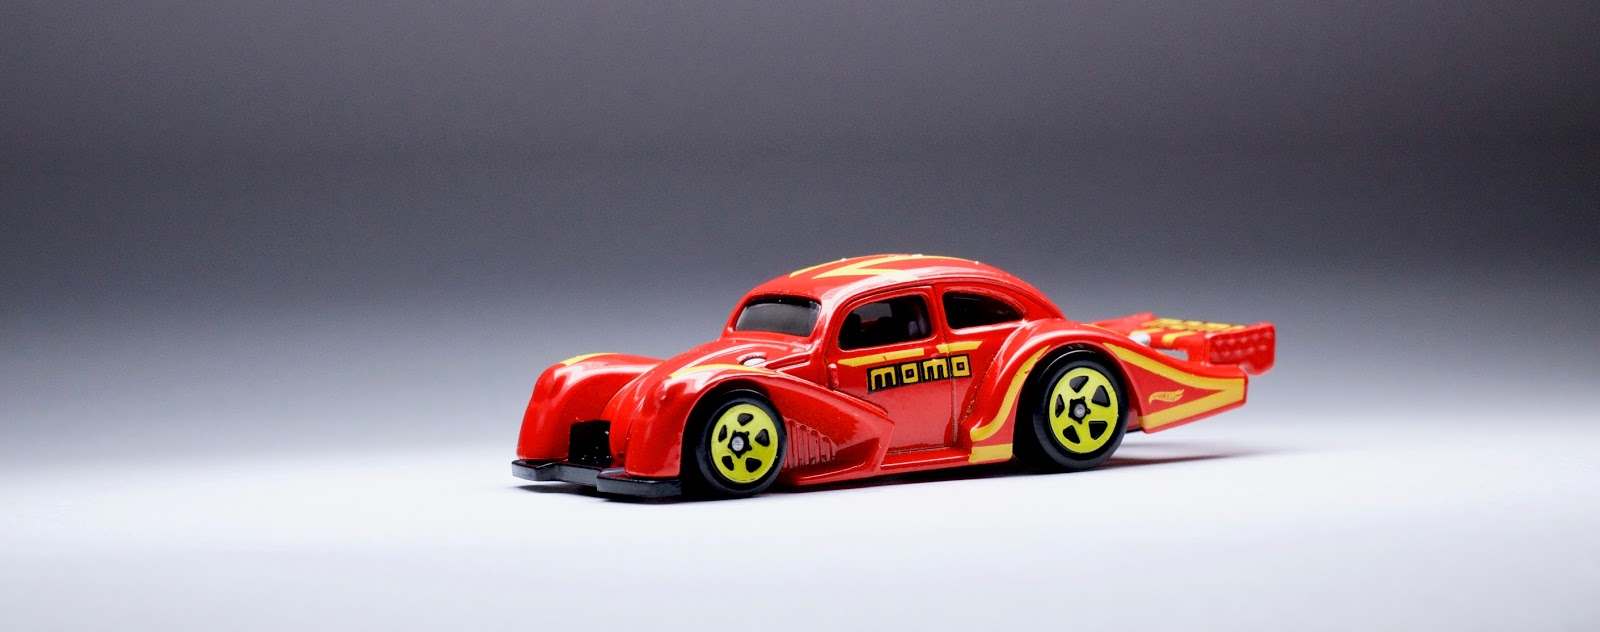 volkswagen kaefer racer continues  tradition  wicked hot wheels vws thelamleygroup